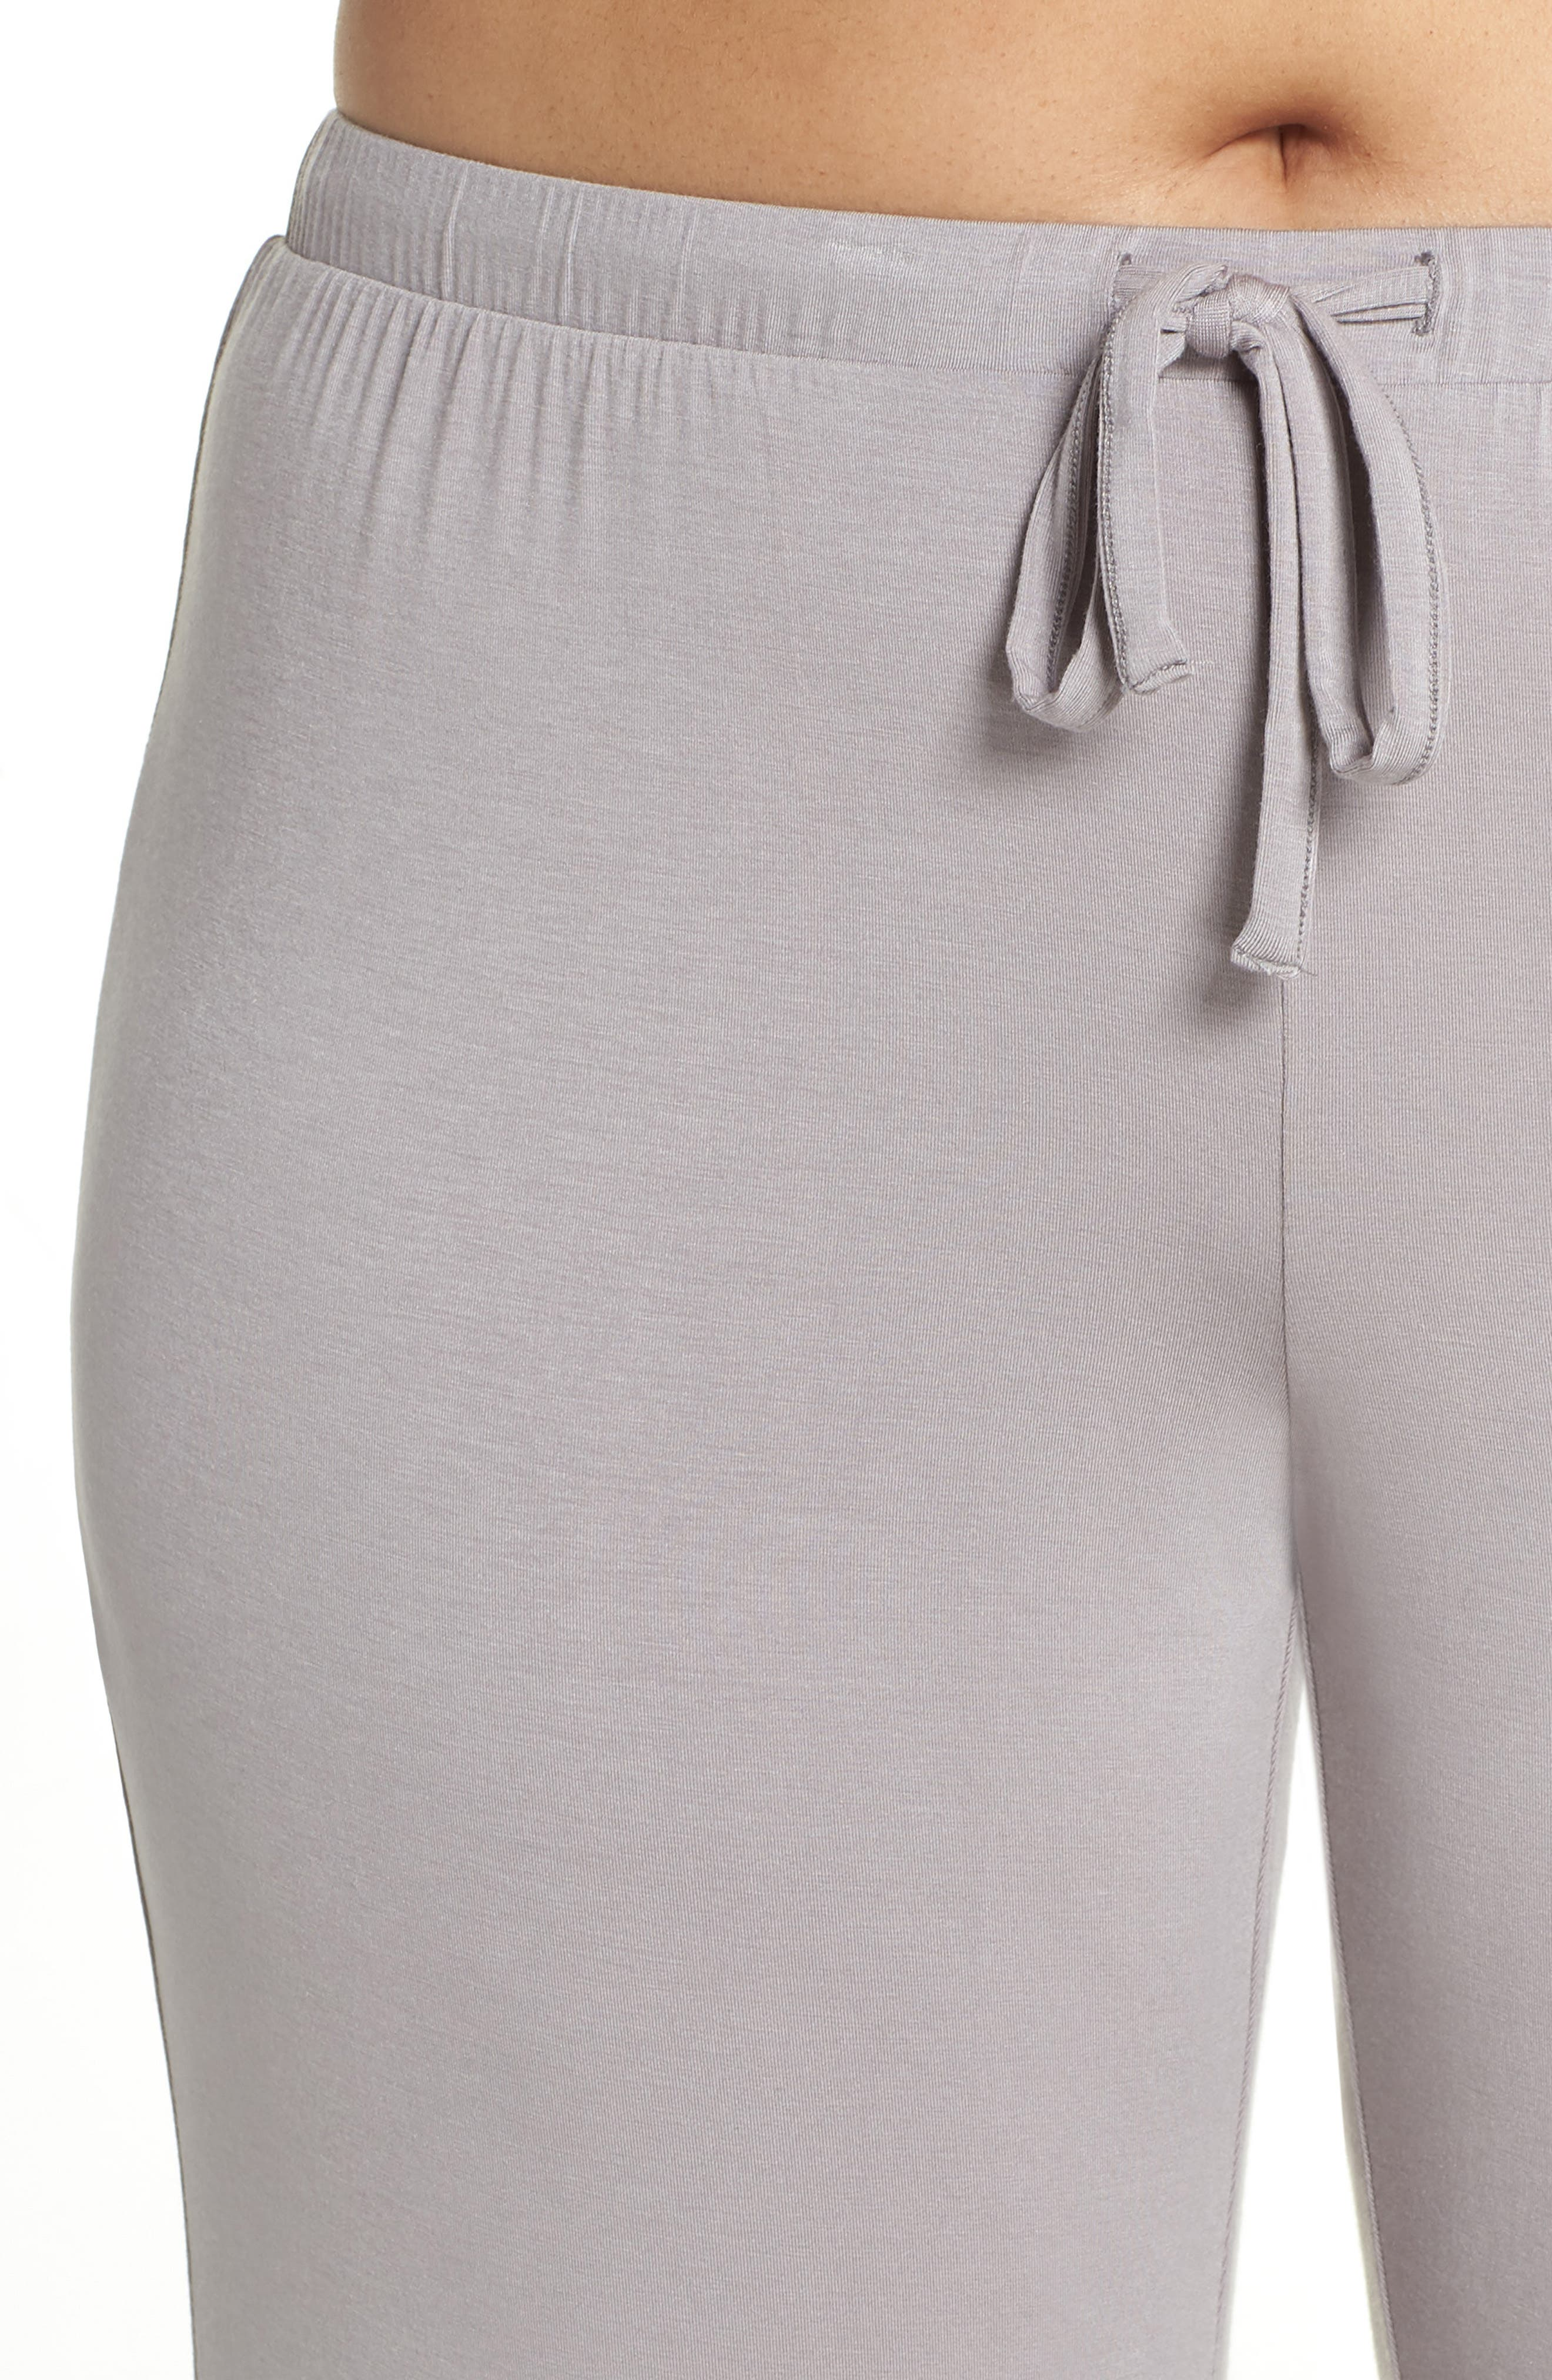 Breathe Lounge Pants,                             Alternate thumbnail 4, color,                             GREY GULL